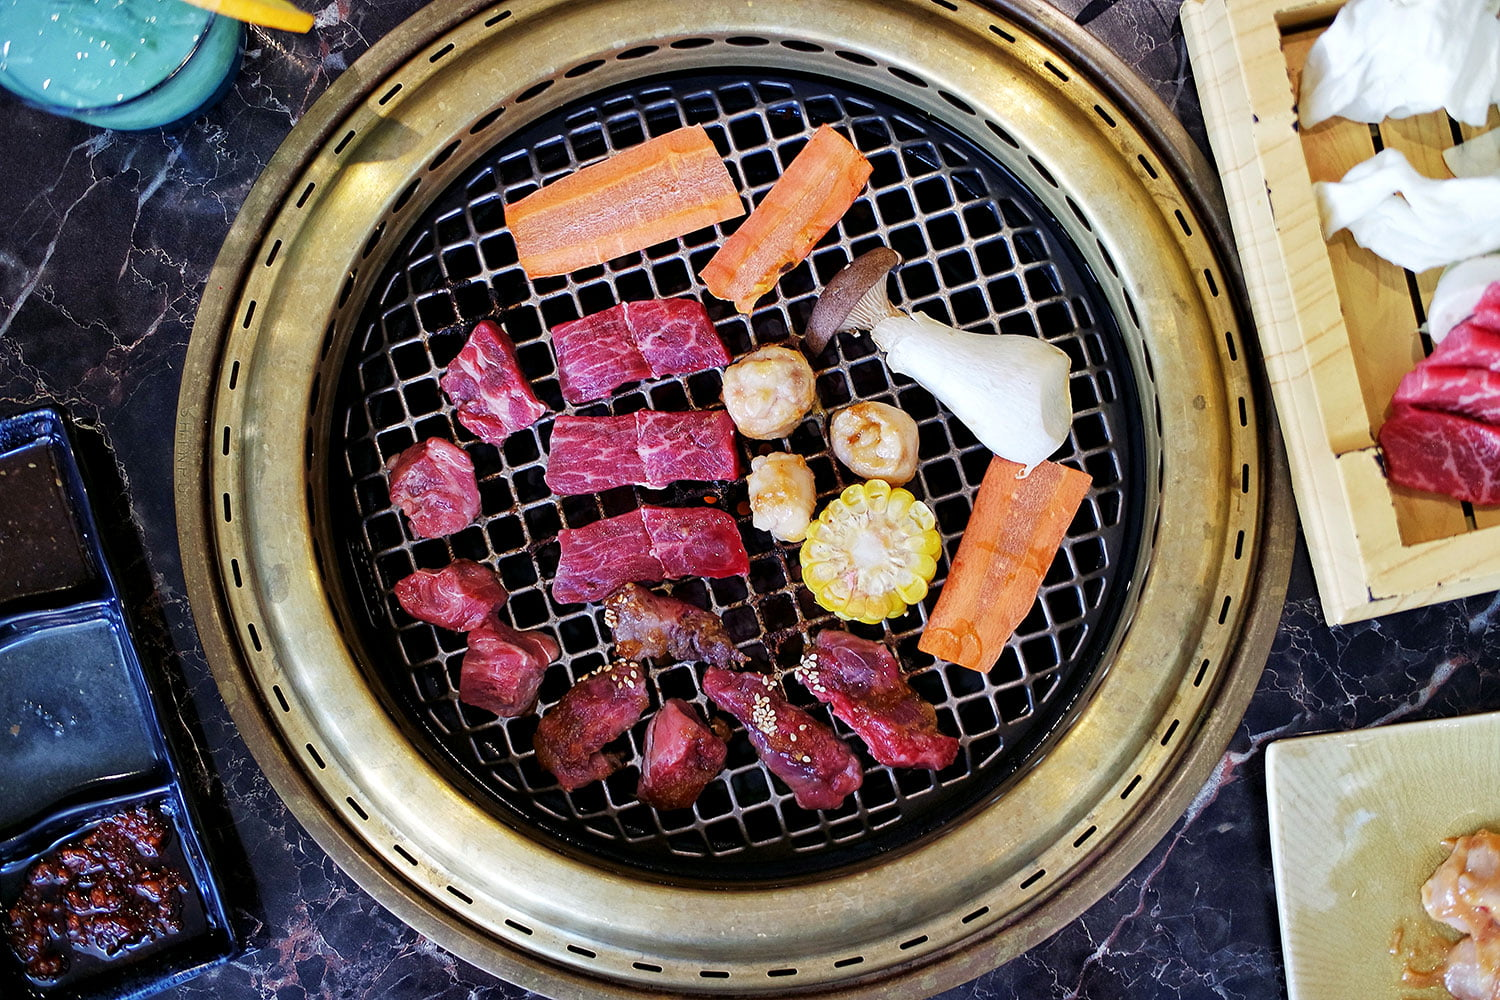 Aerial shot of the barbecue filled with wagyu beef pieces and vegetables